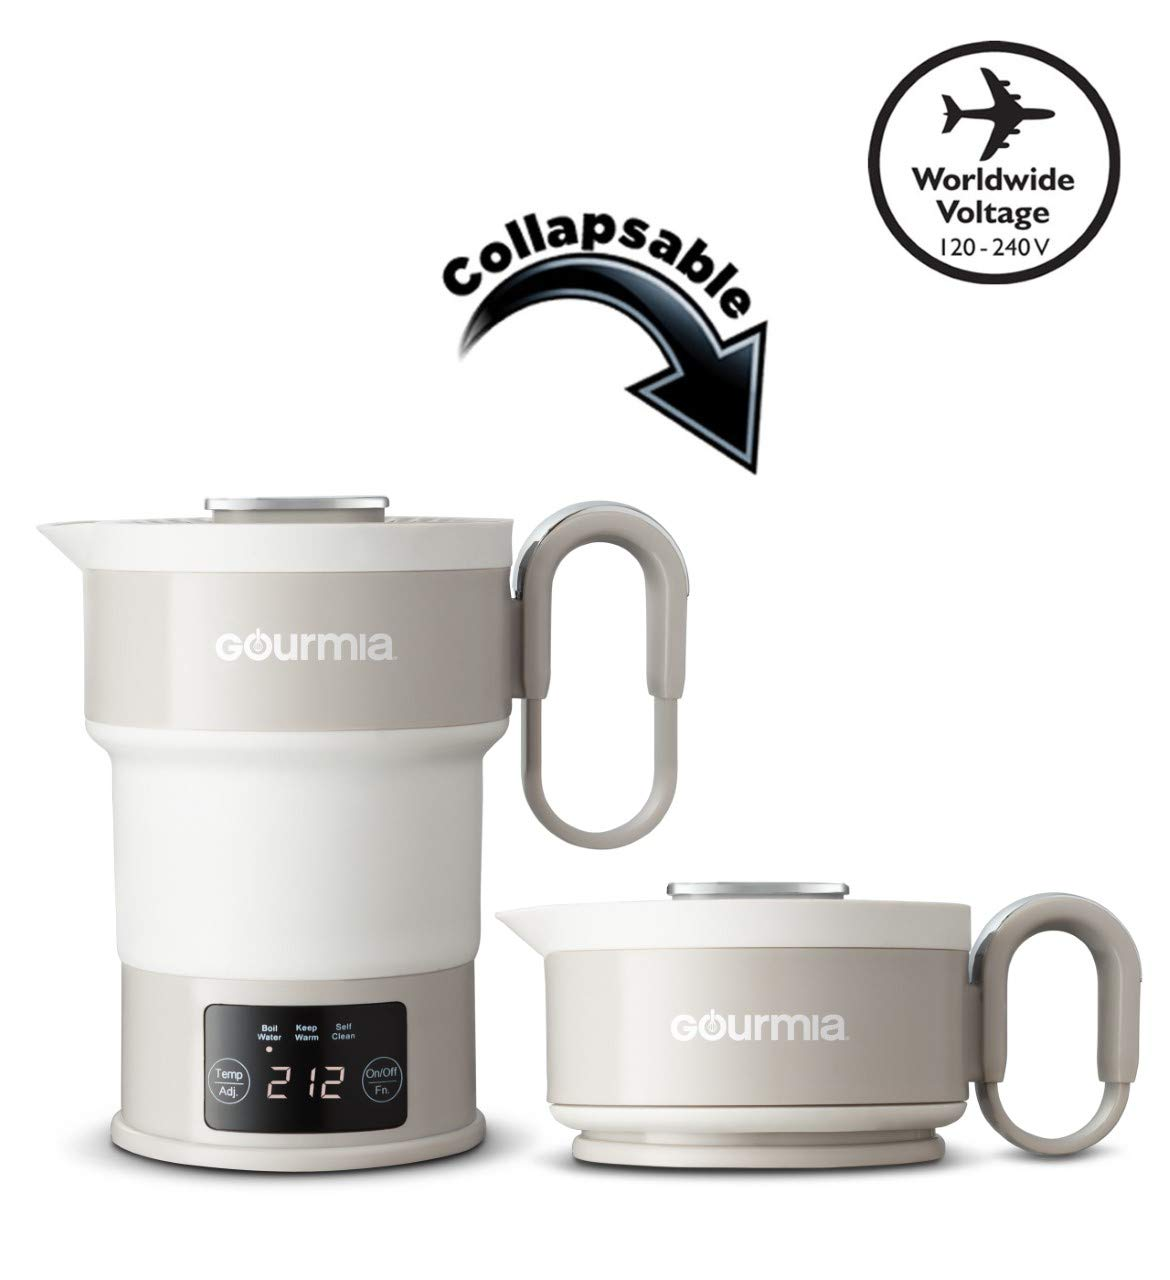 Gourmia GDK368 Digital Electric Collapsible Travel Kettle - Foldable & Portable - Dual Voltage - 3 Function- Boils, Keeps Warm & Self Cleans - Fast Boil - Water Heater For Coffee, Tea & More - Food Grade Silicone - Boil Dry Protection - 20 oz capacity (Grey)